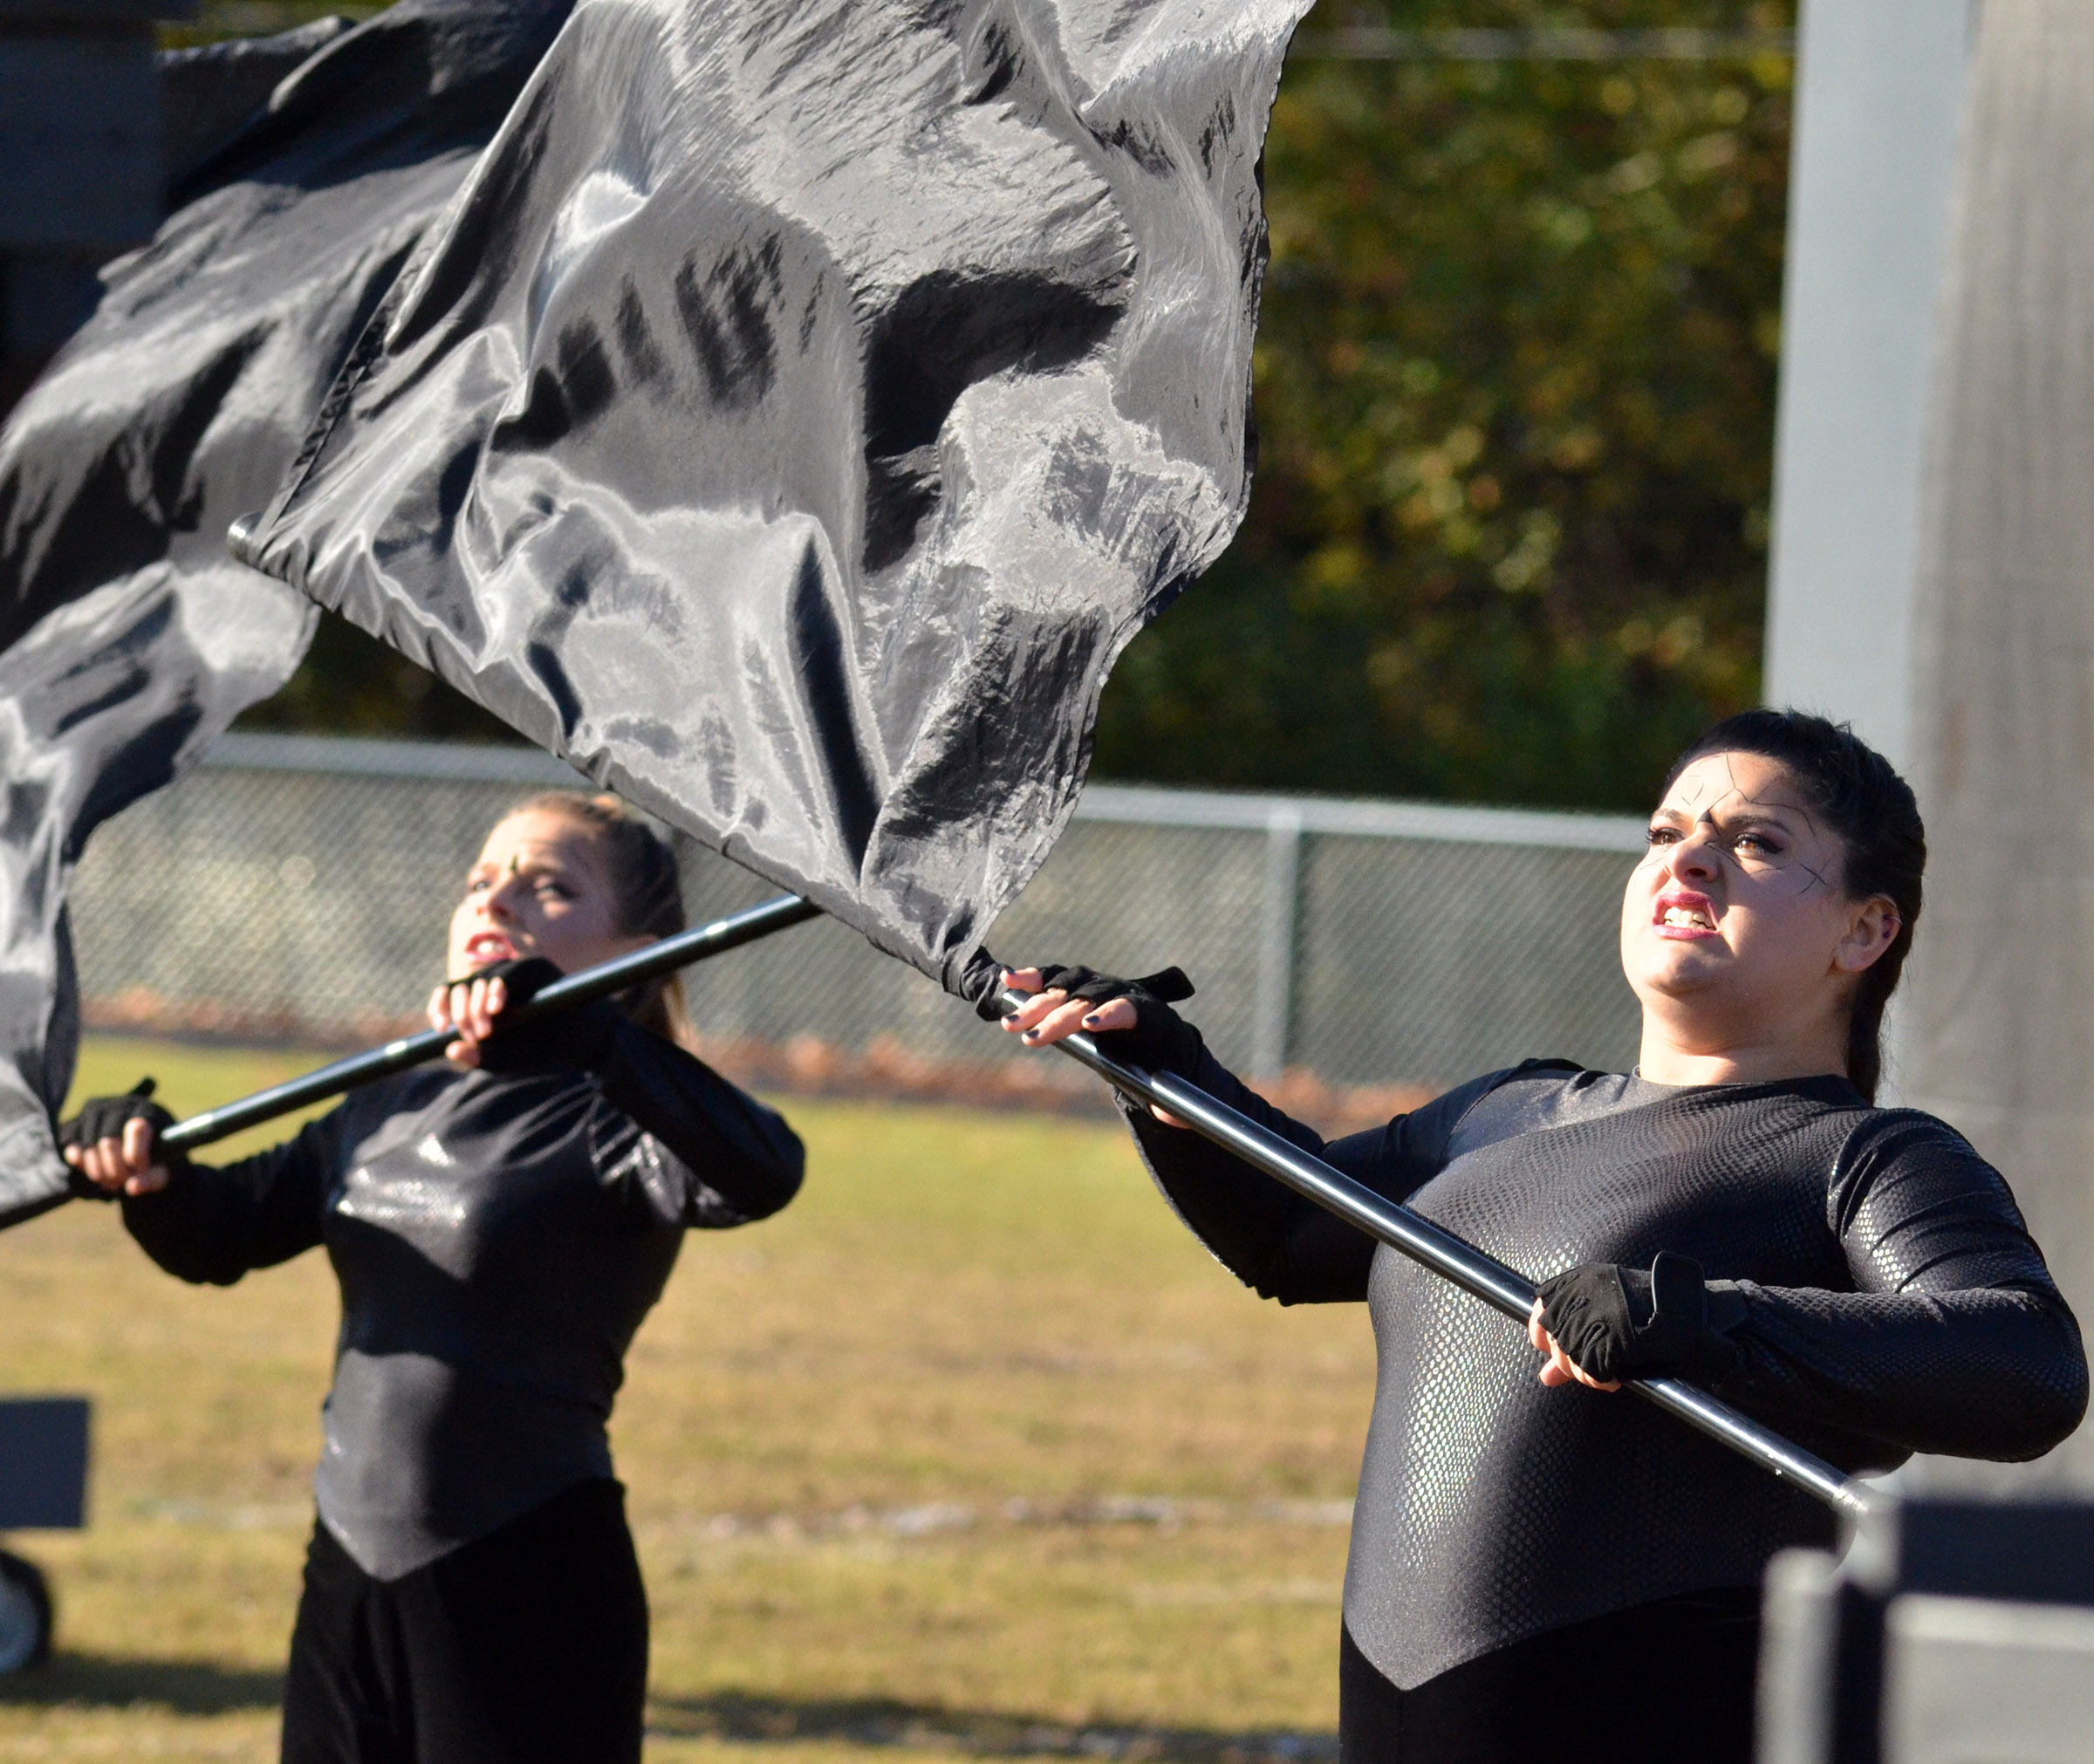 Campbellsville Middle School seventh-grader Alyssa Orberson, at left, and CHS sophomore Brandy Miller perform.